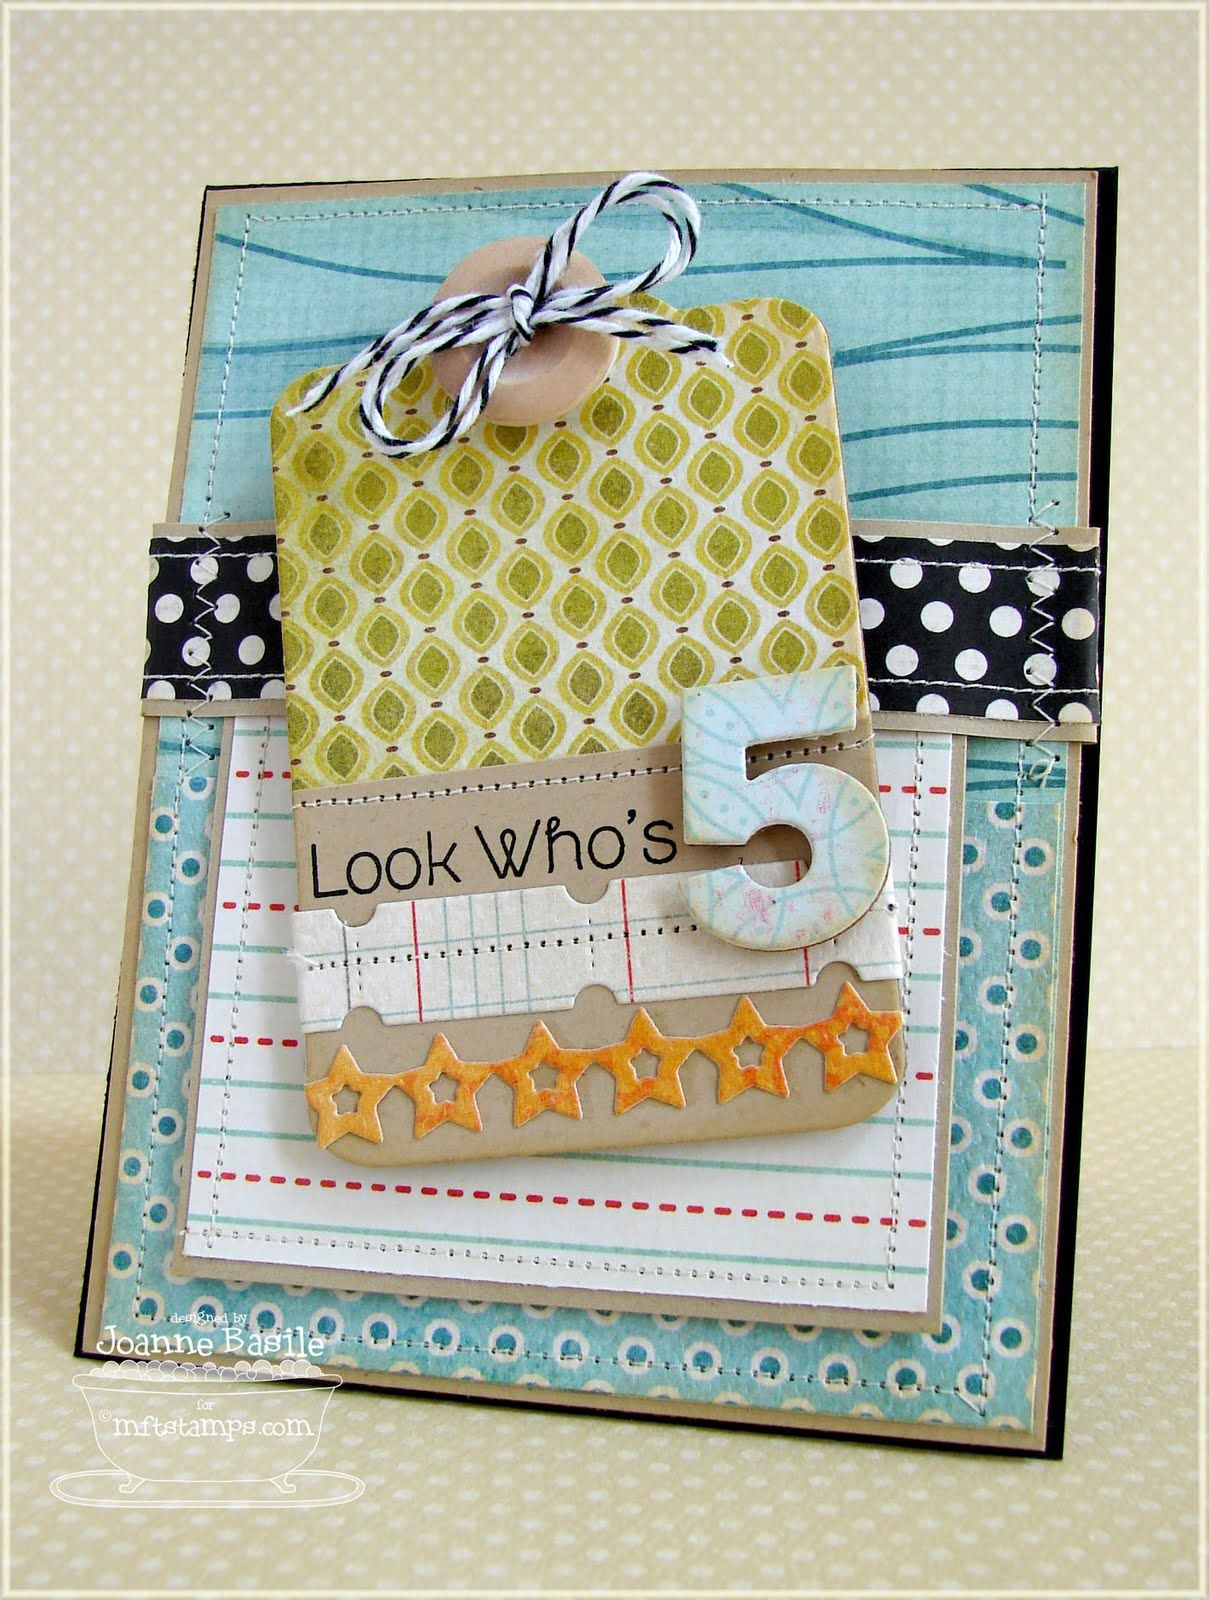 Pin by julie williams on birthday pinterest favorite things